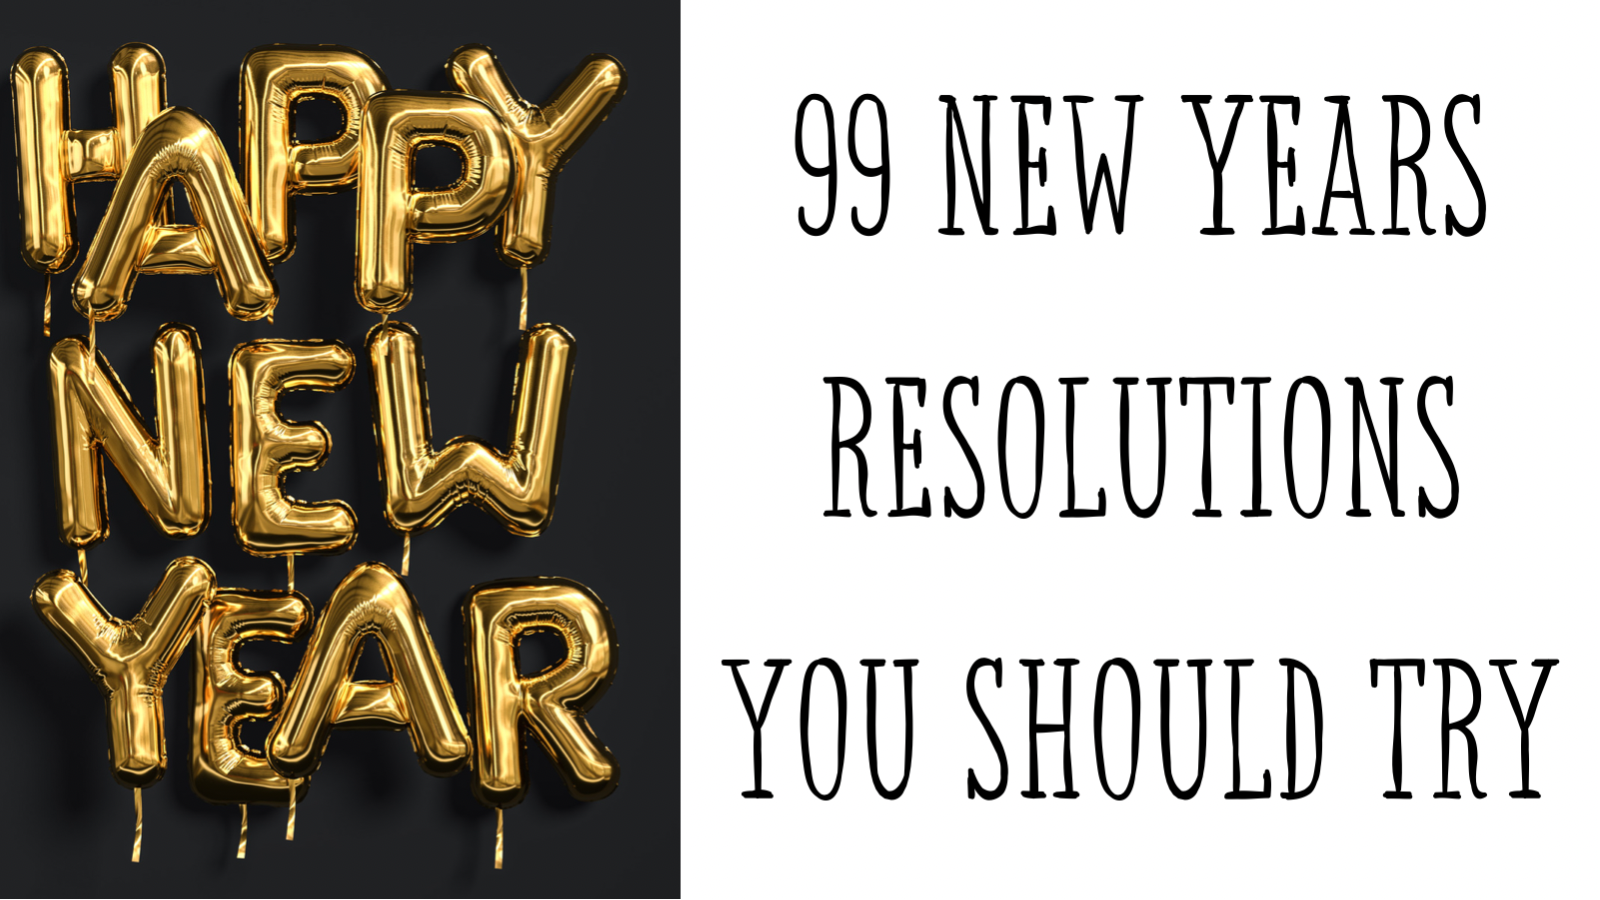 99 new years resolutions ideas you should try!